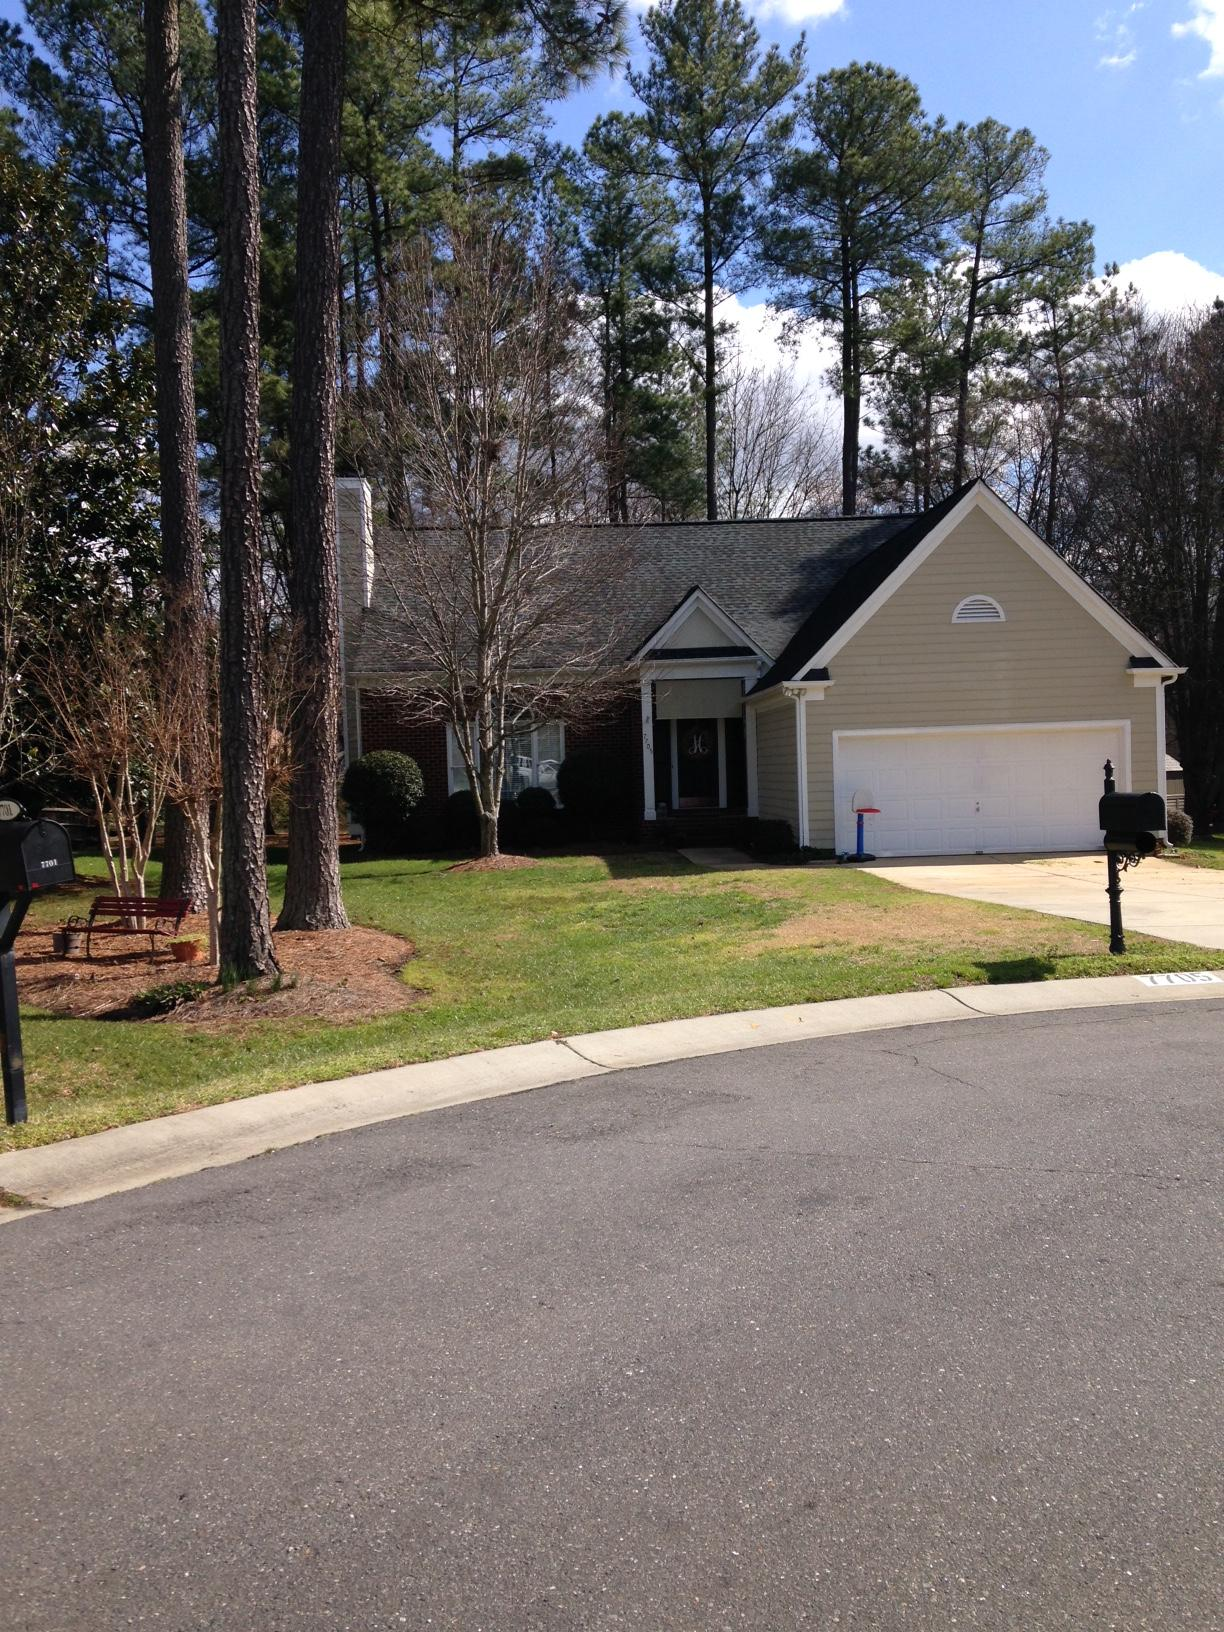 Just listed by don anthony realty 3 bedroom 2 5 bath home - 5 bedroom houses for sale in charlotte nc ...